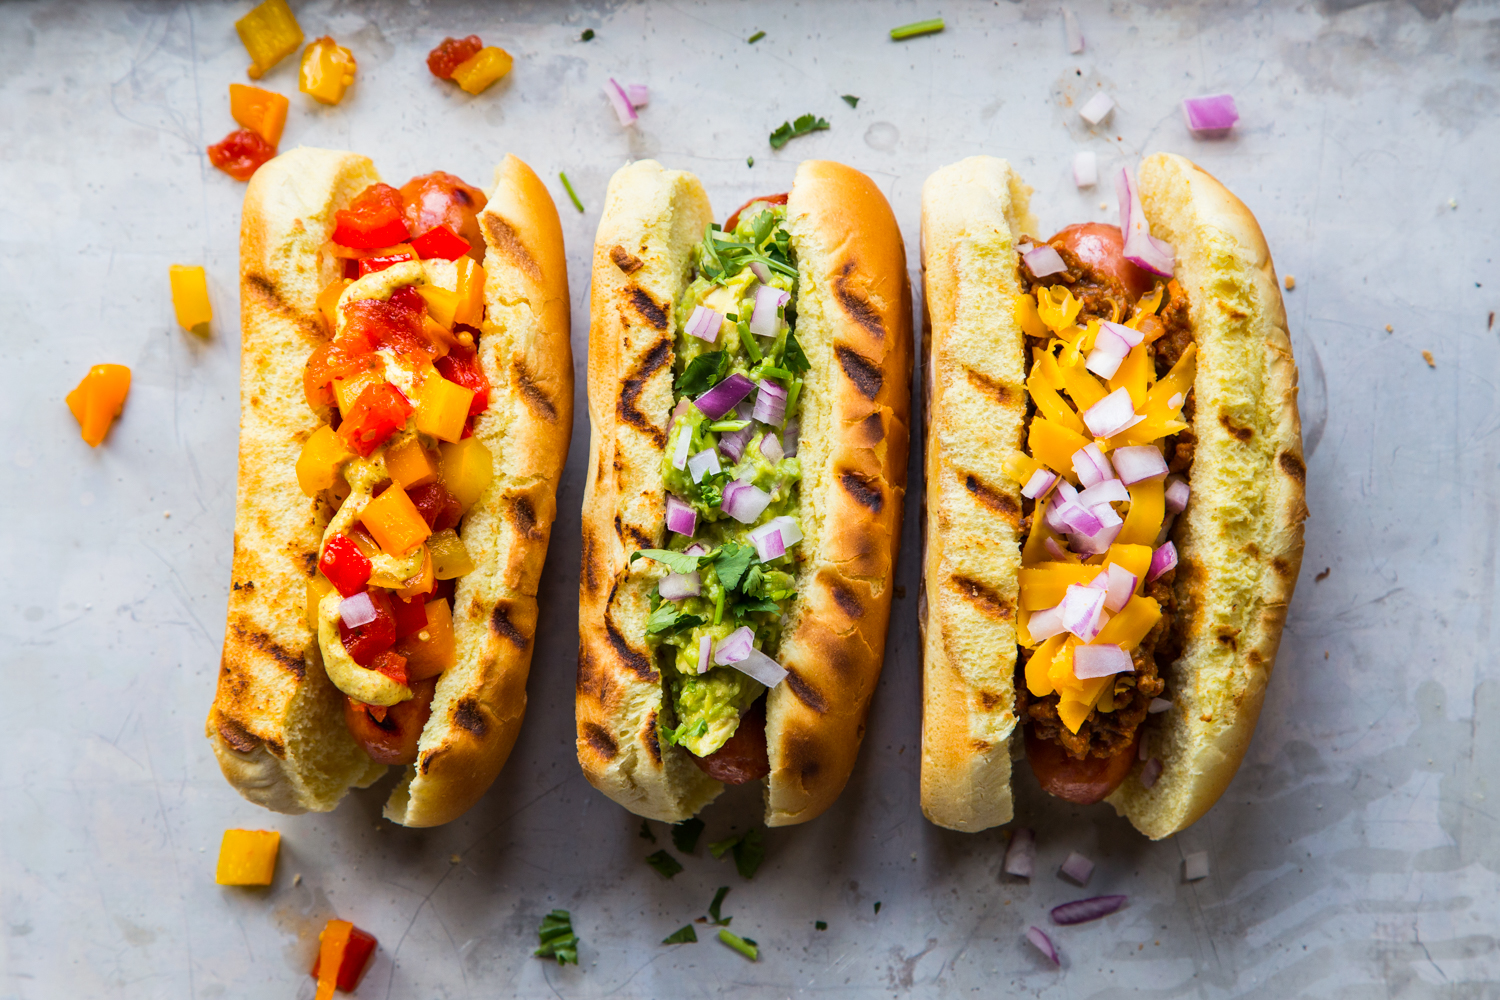 The last time I ate a hot dog was upwards of five years ago, on a boiling summer day, at a baseball game. Nothing sounded better than a hot dog and a cold beer, and boy, did they both hit the spot.